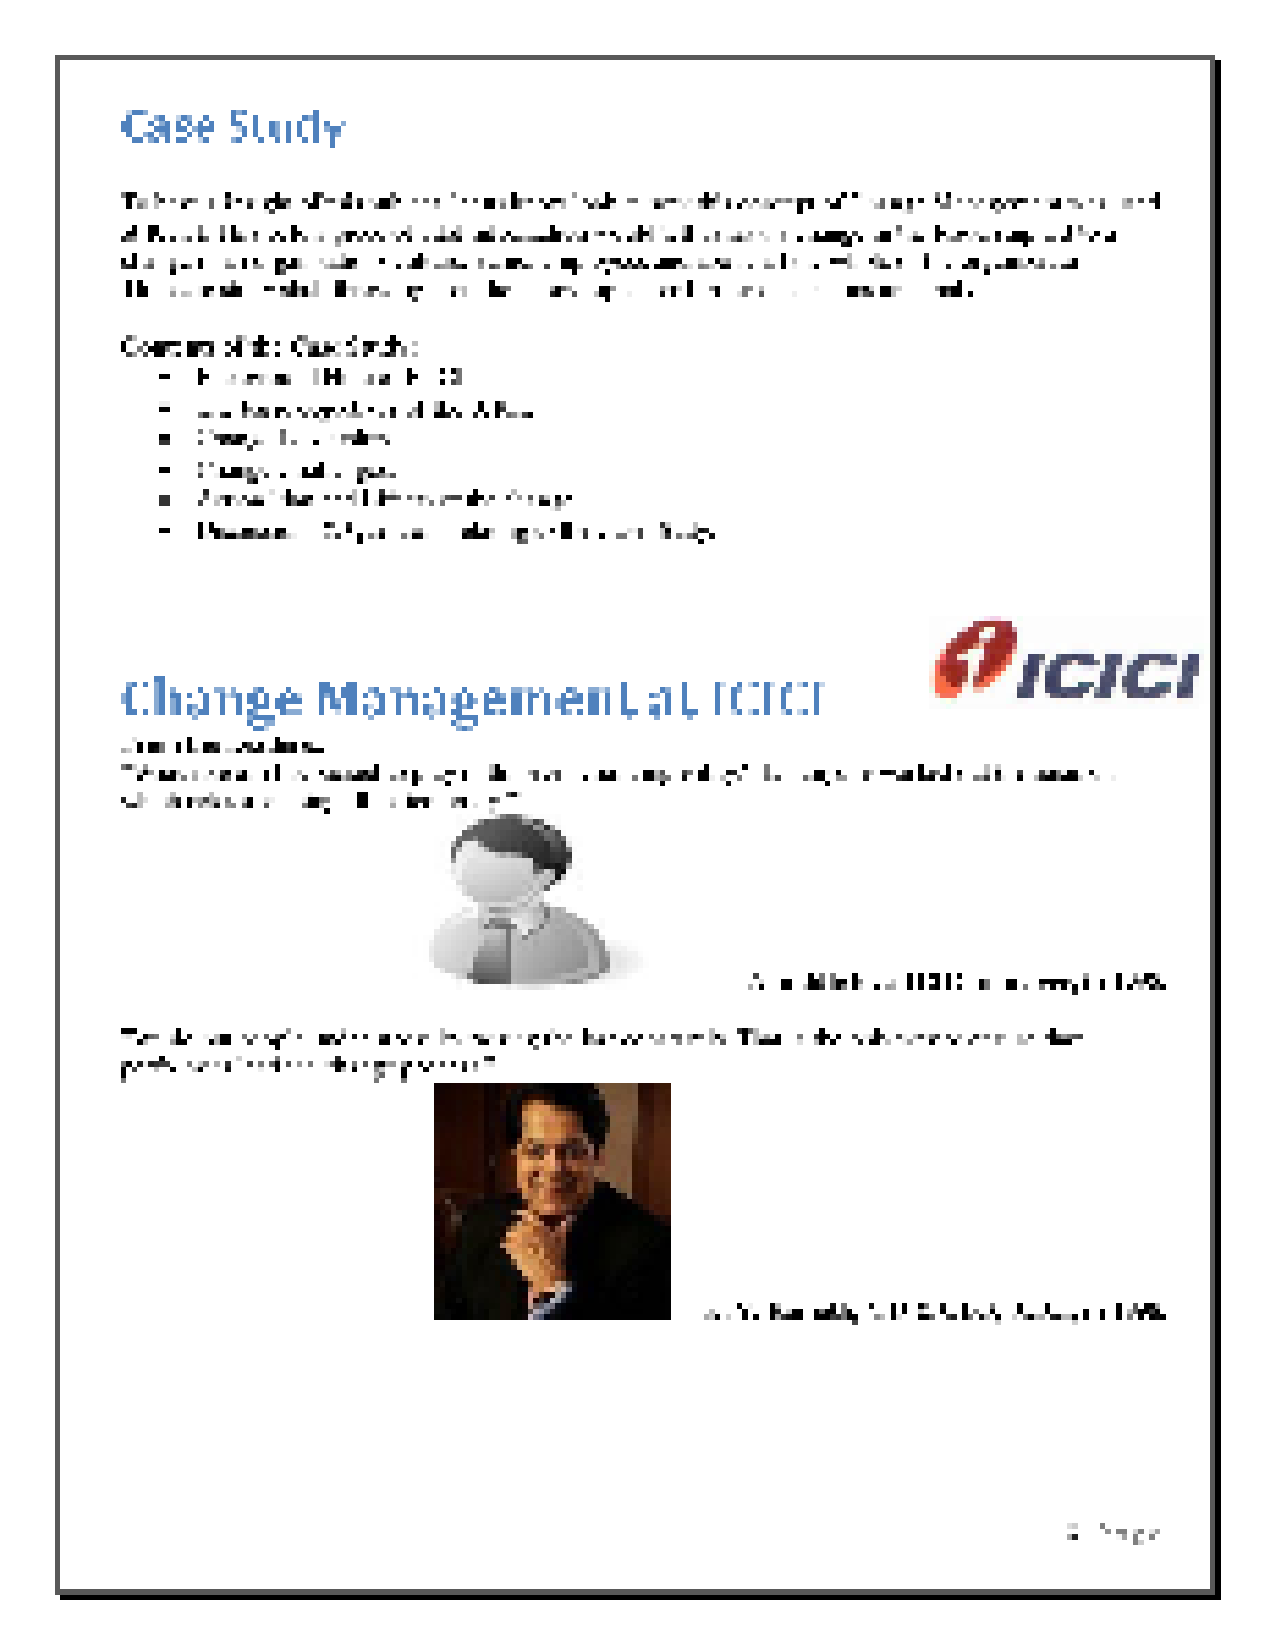 case study on icici bank how